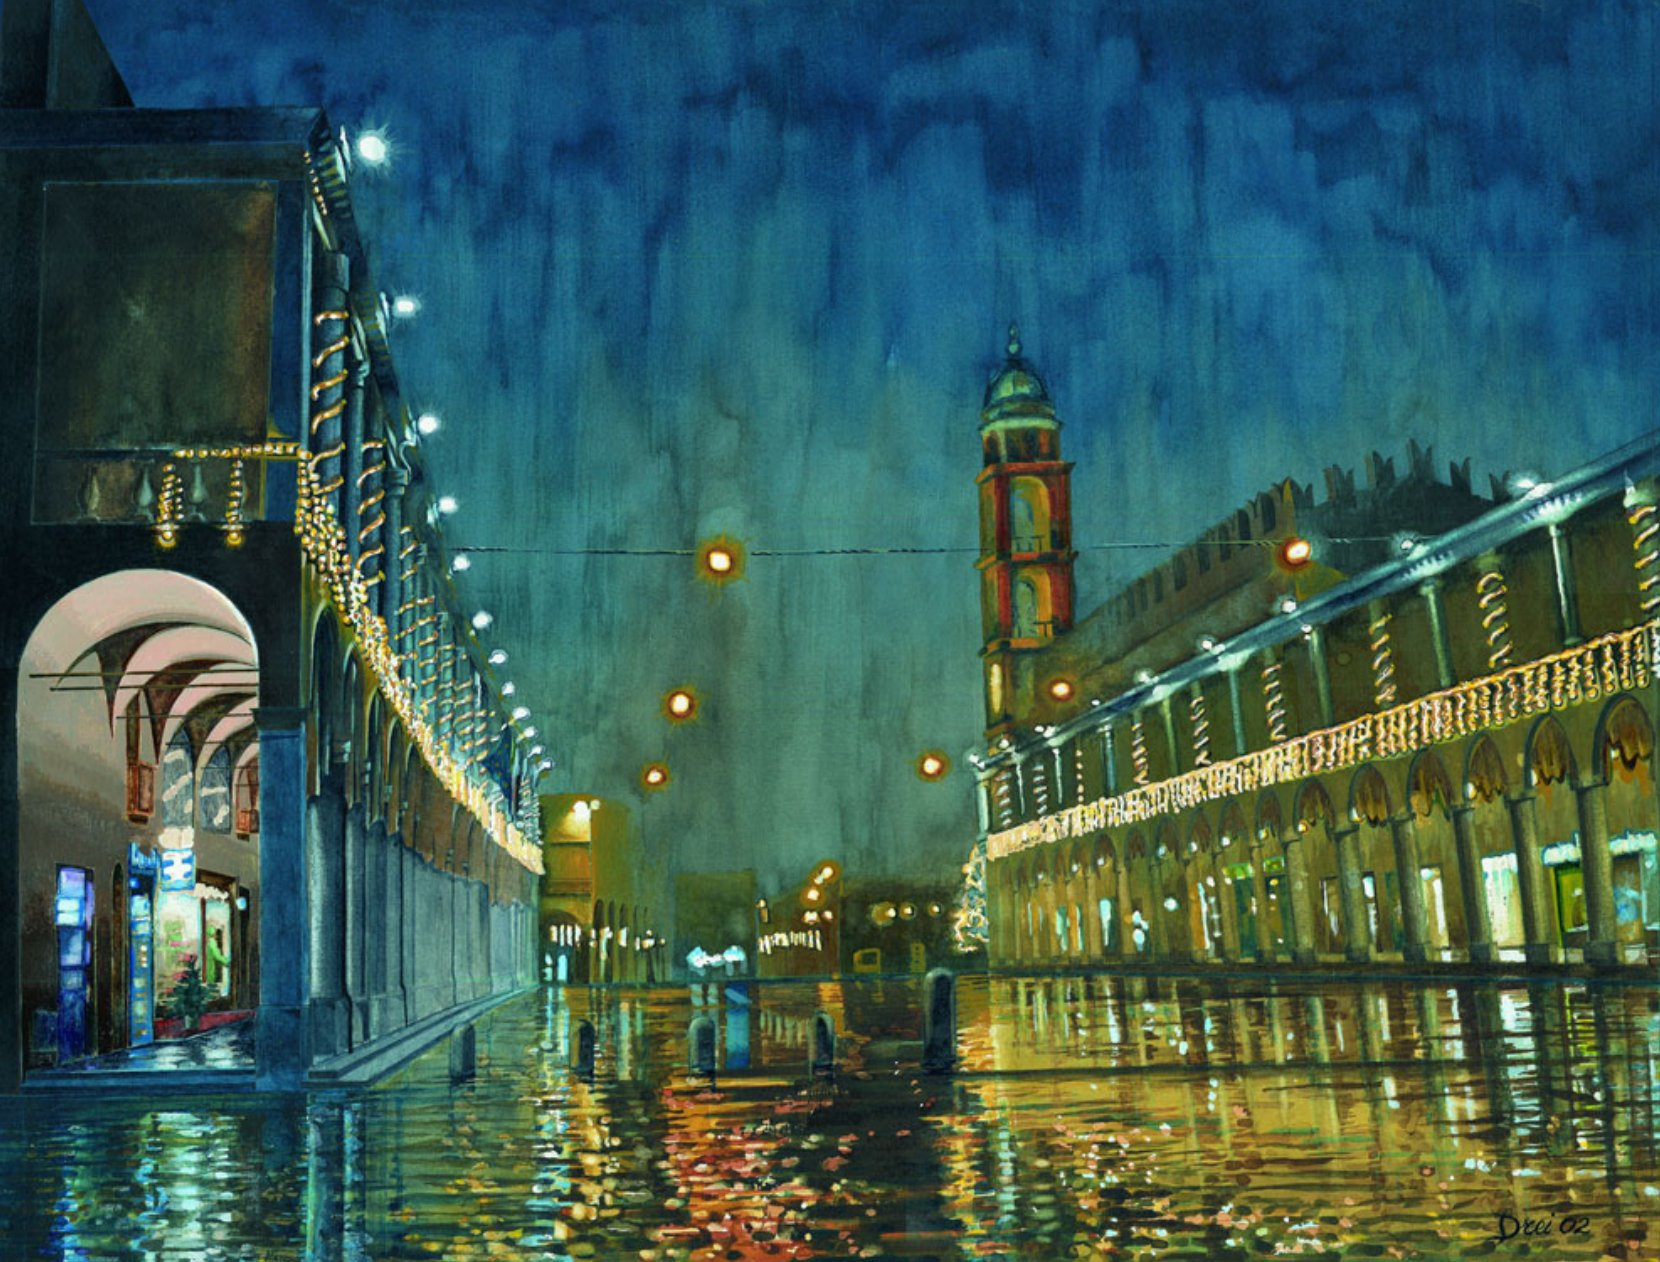 #LeLuciDInverno  Winter, rainy night in Faenza Silvano Drei©  b.1947 #DonneinArte @alecoscino  Goonight 🌃 https://t.co/dKrqM0utzW